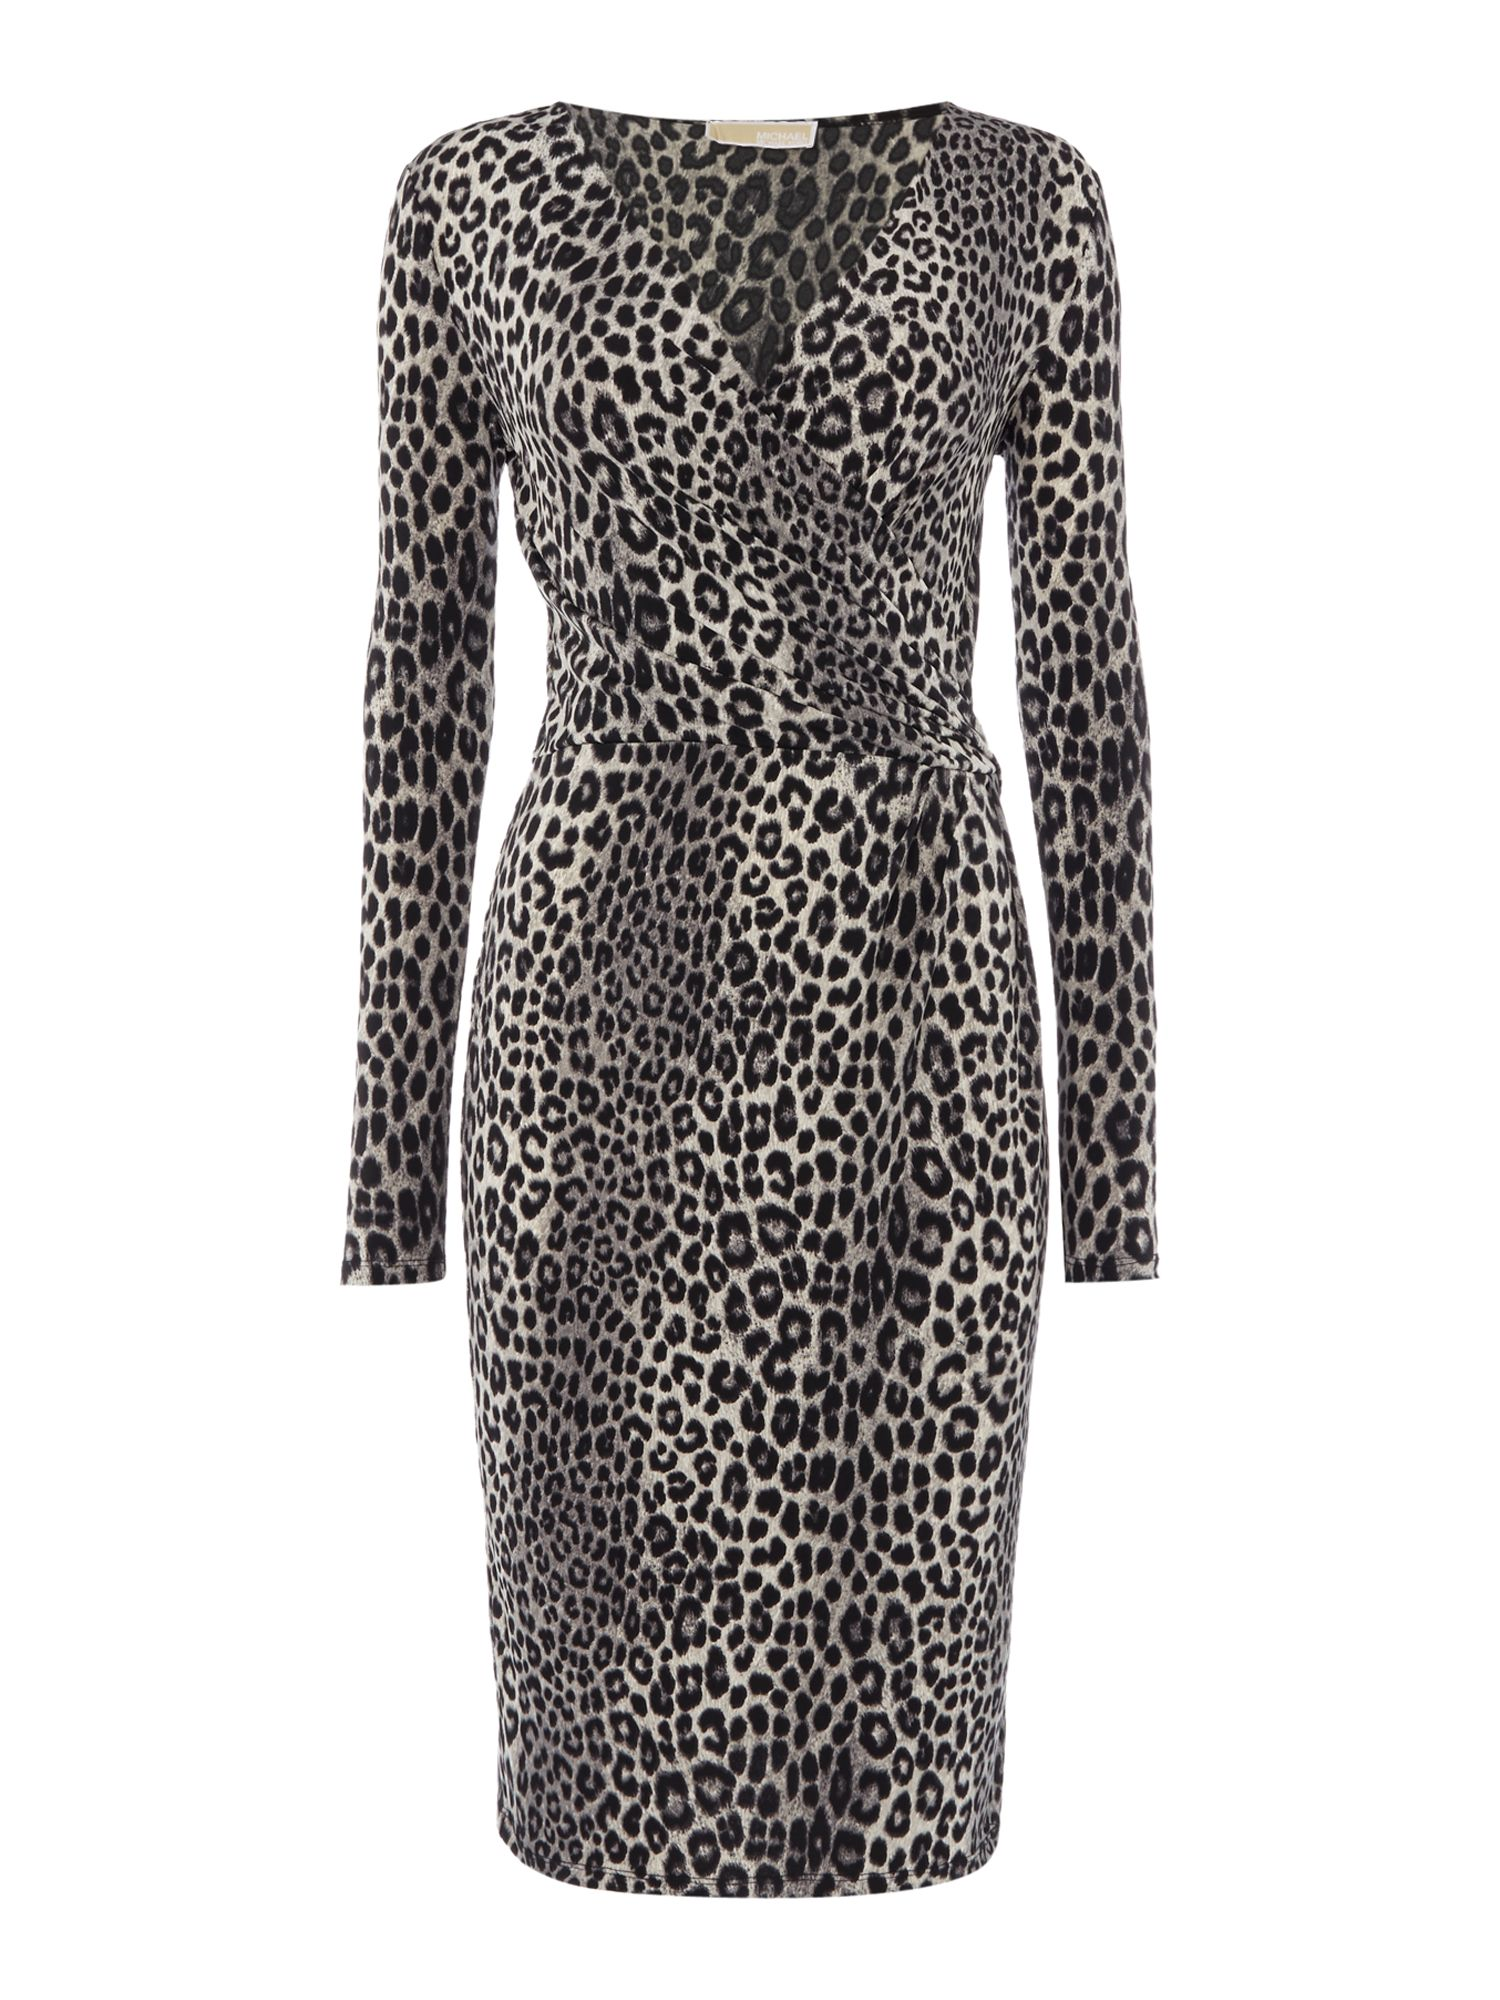 Michael Kors Panther Long Sleeve Wrap Dress, Black